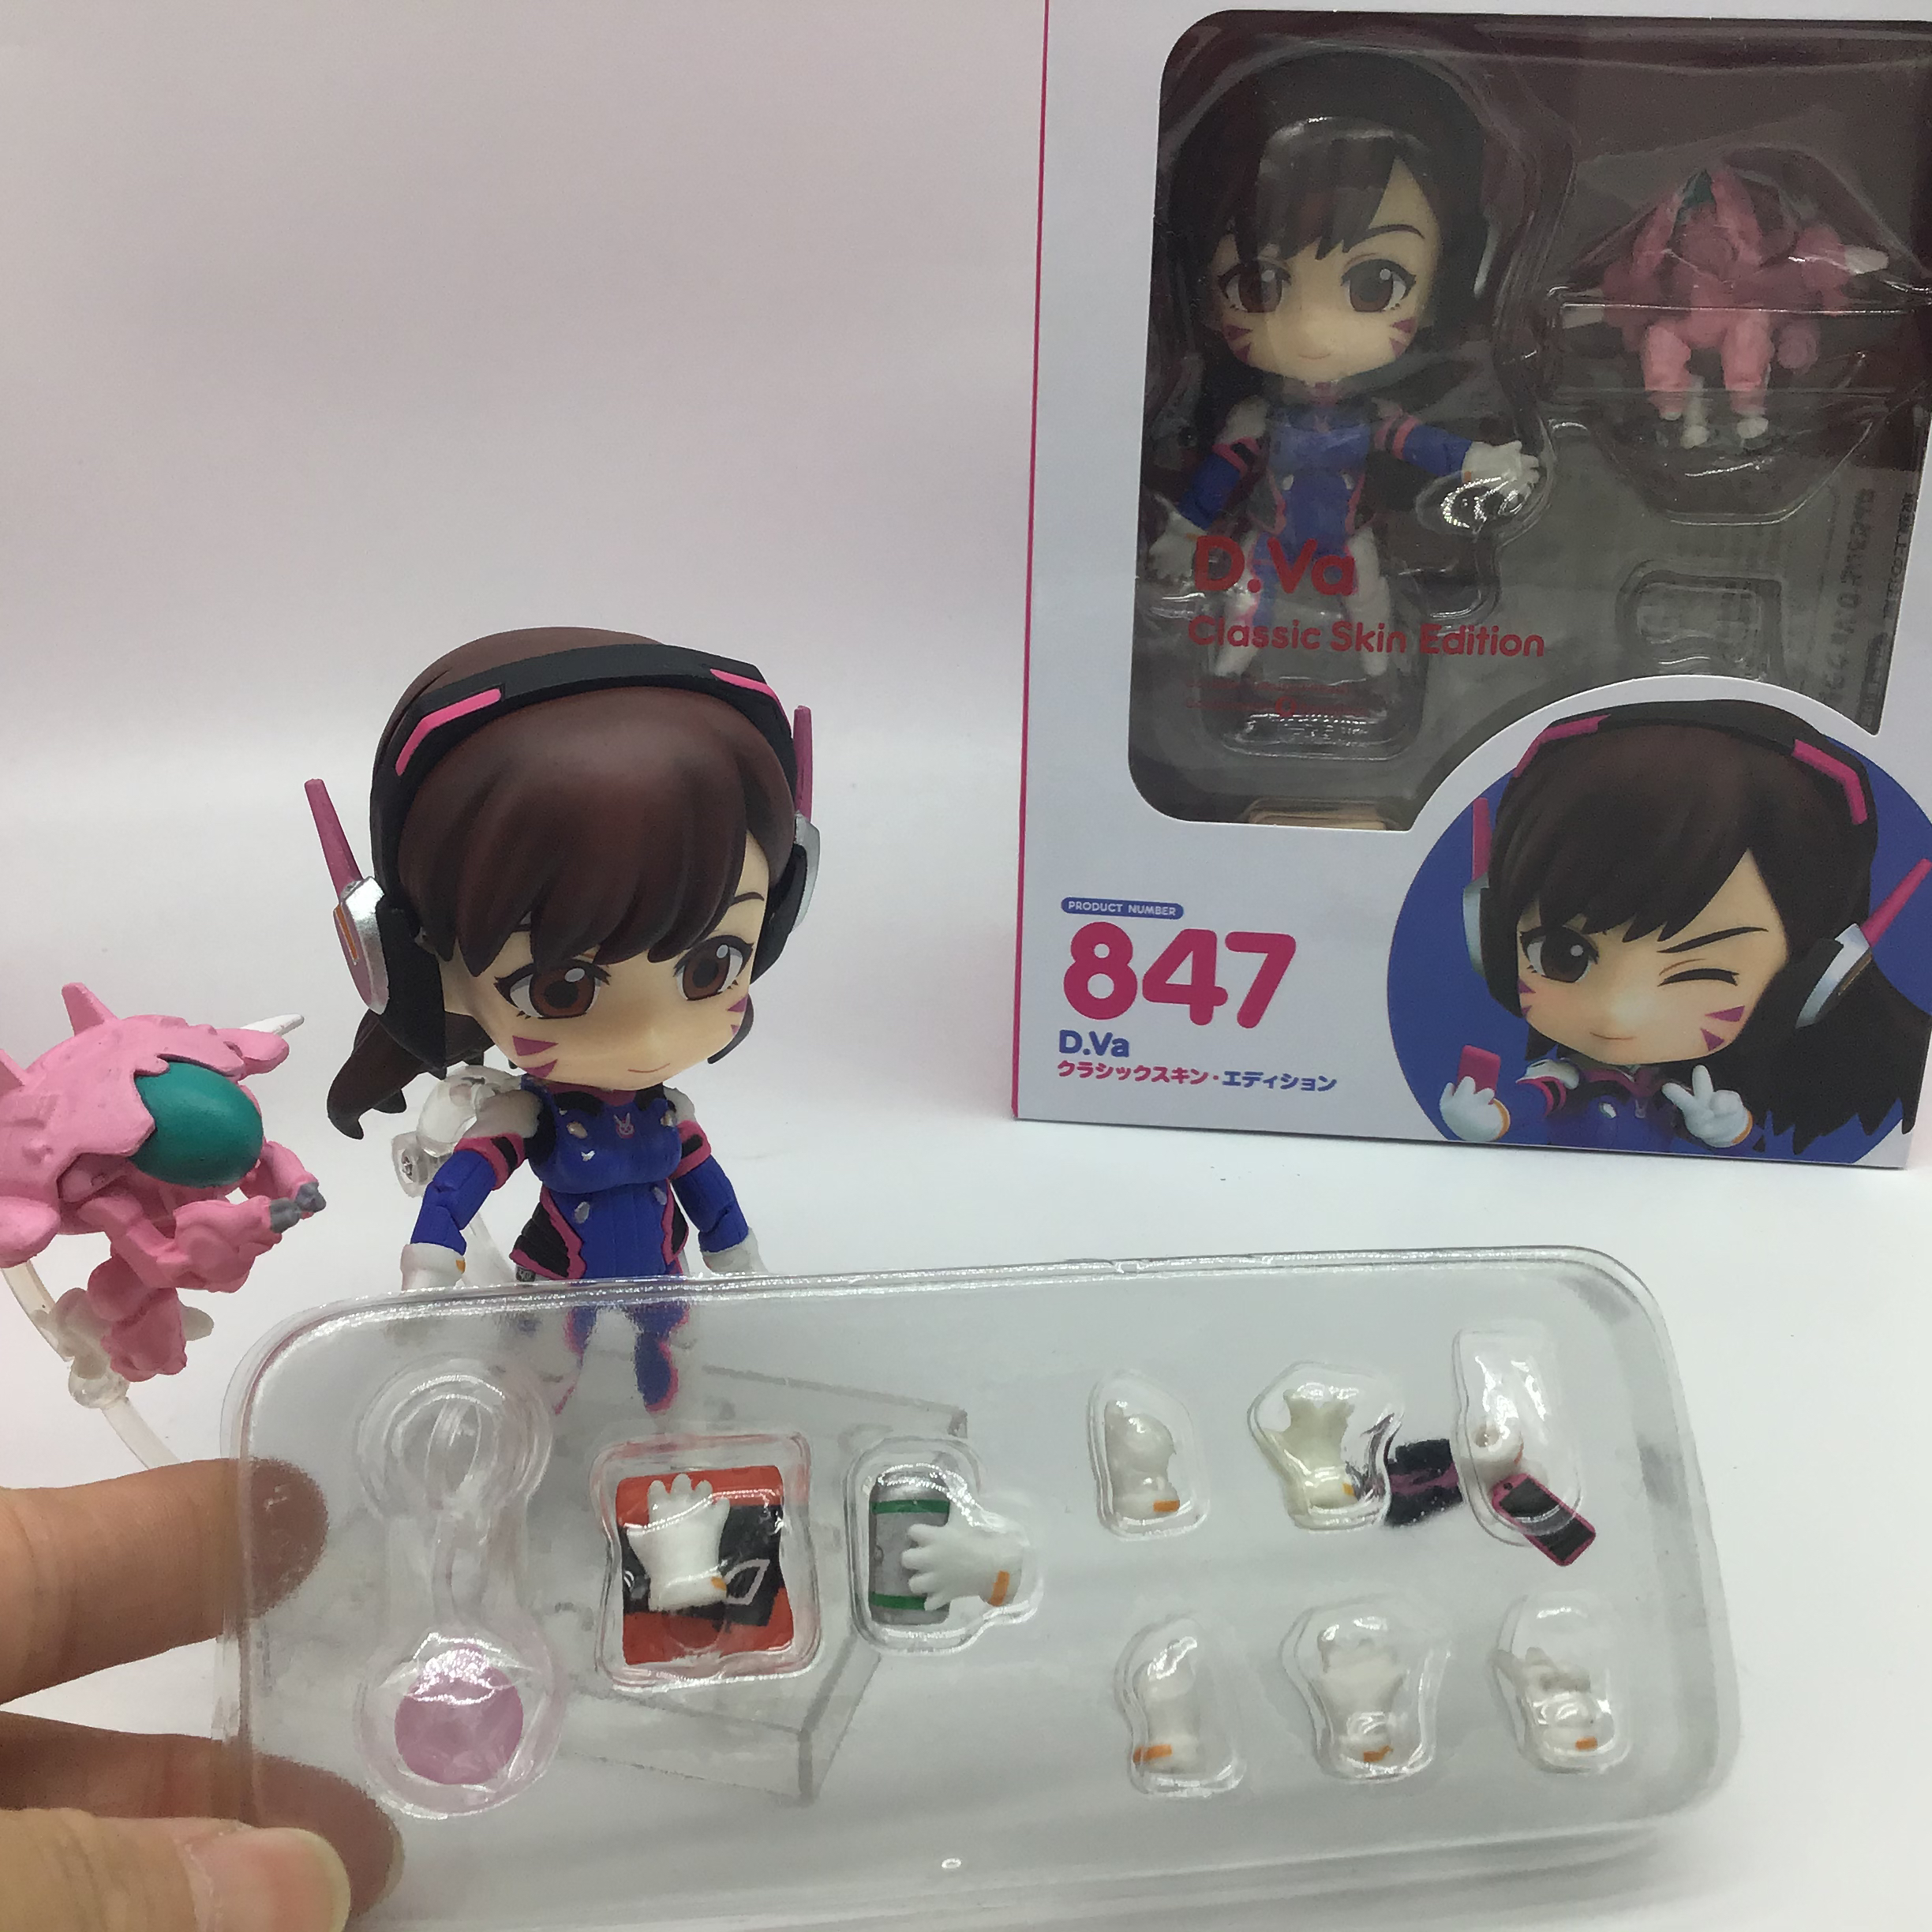 10CM Game Q version Overwatched D.Va 847 # Classic Skin Edition PVC Action Figures Model Toys Gift Doll 4